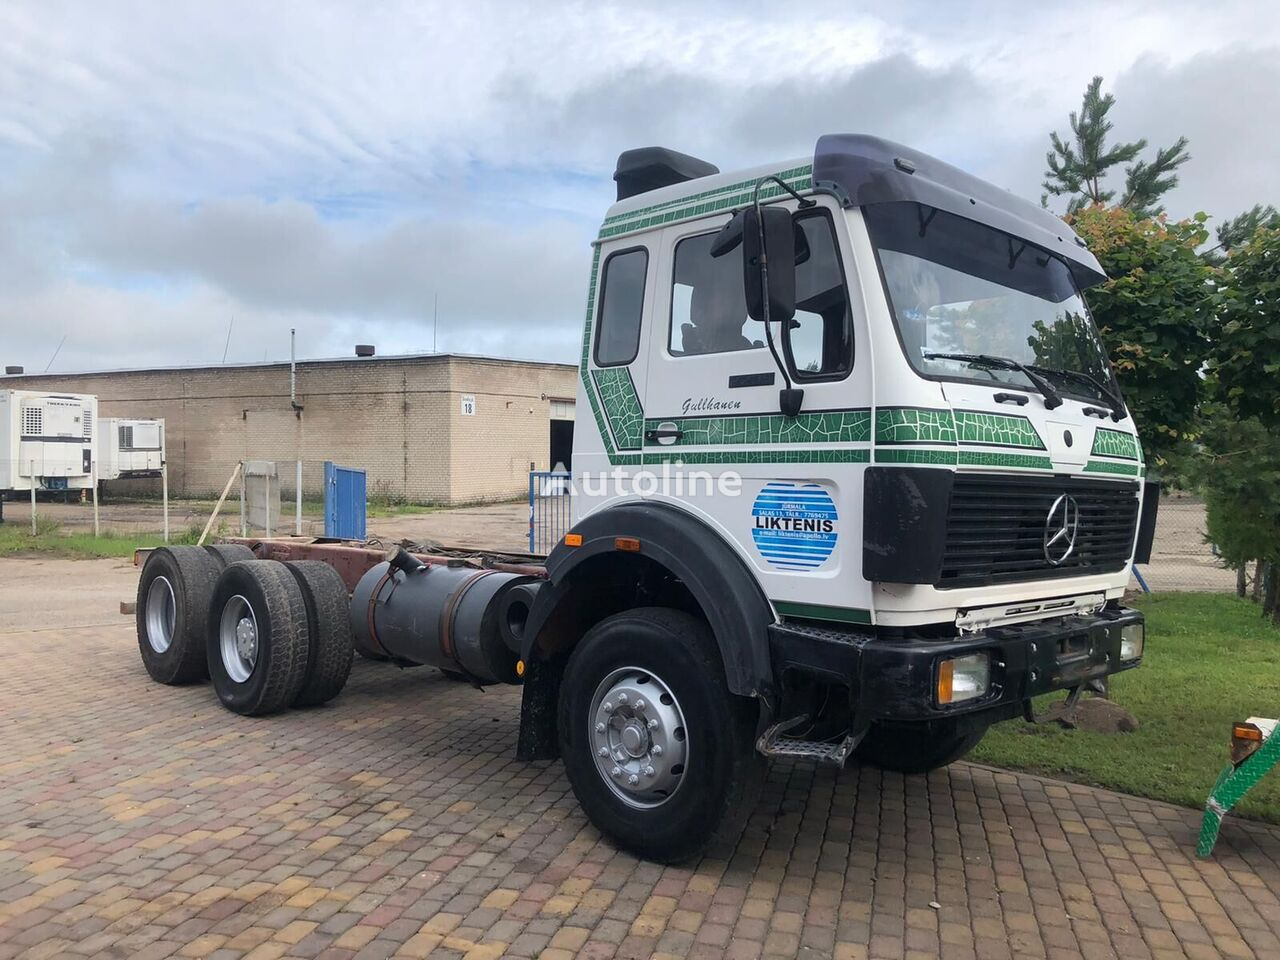 MERCEDES-BENZ Sk 2235 6x2 big axel ful spring low kilometers chassis truck